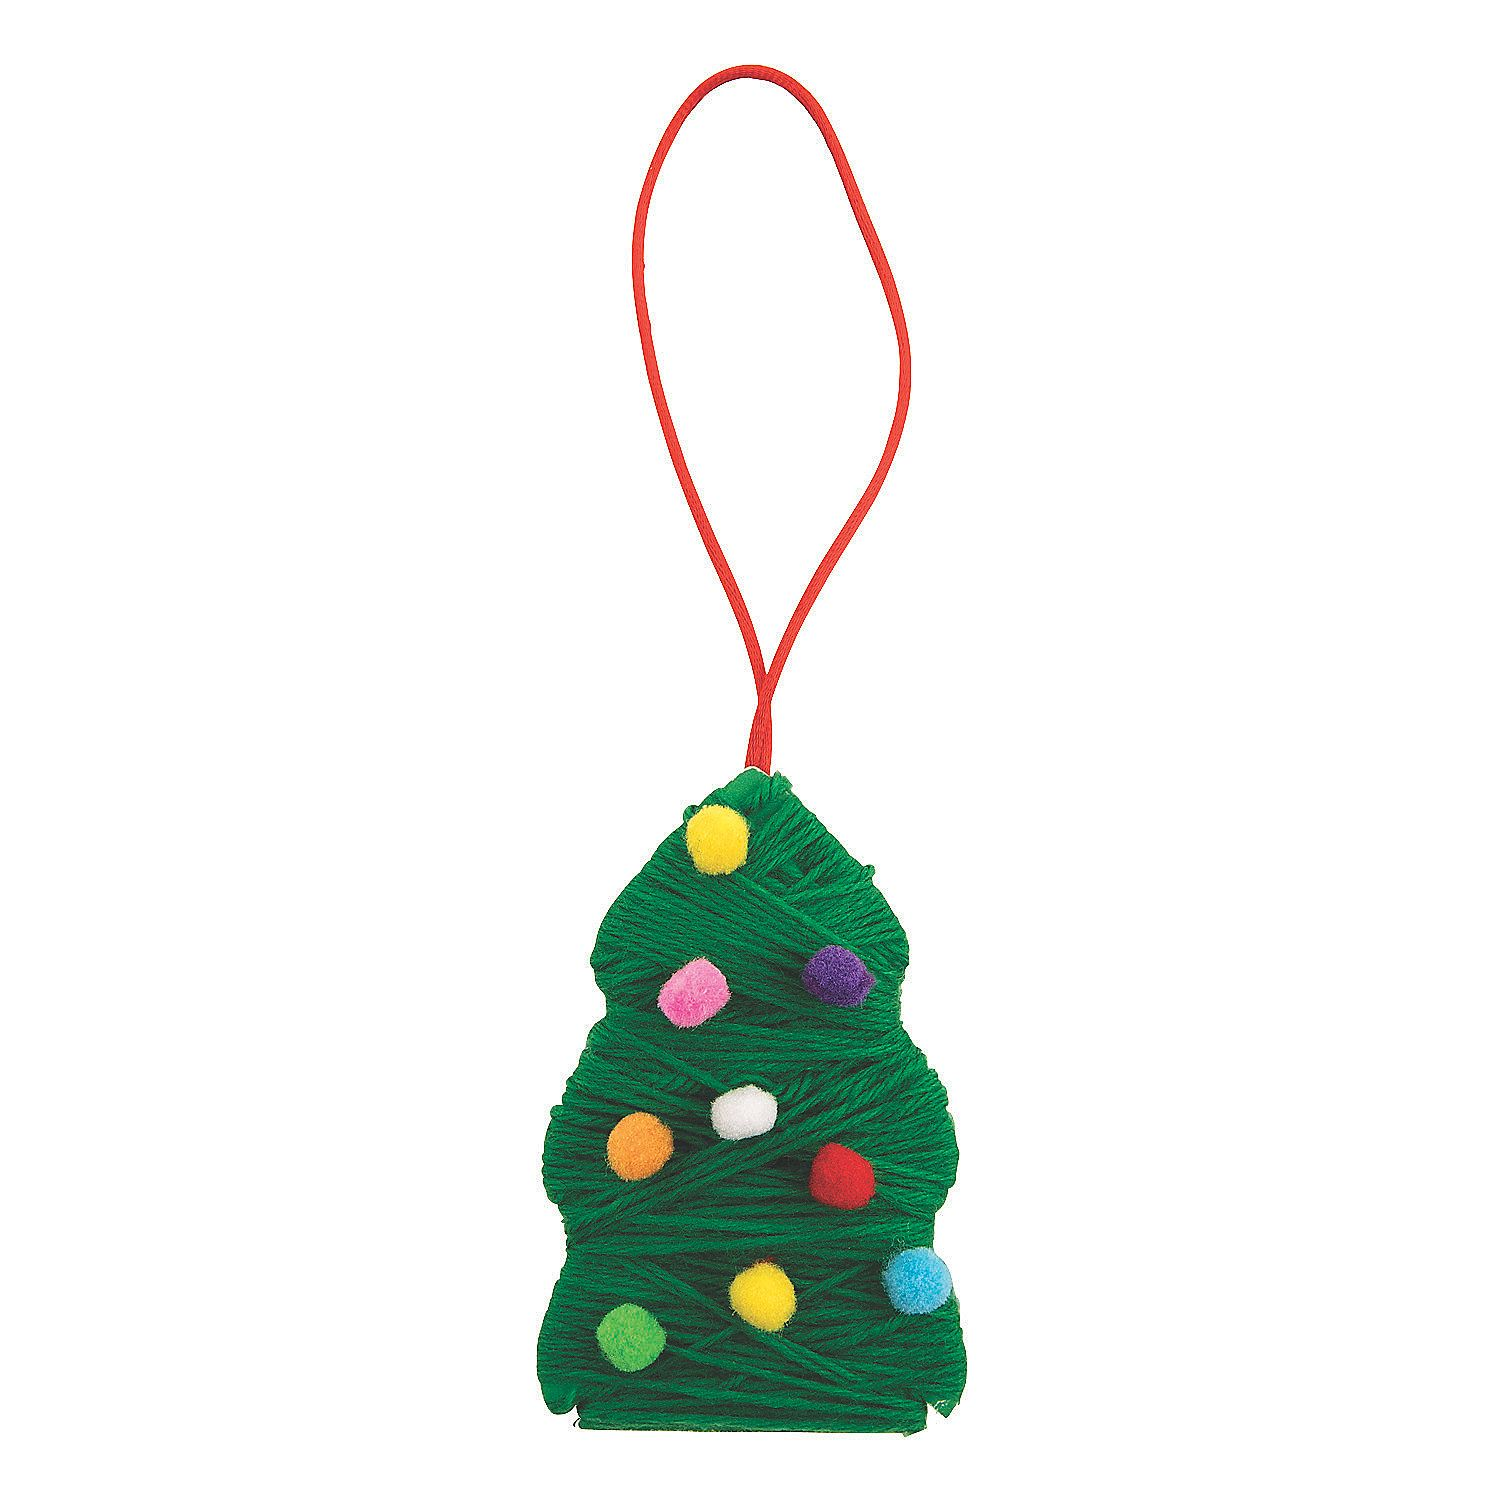 Christmas Tree Yarn Ornament Craft Kit Oriental Trading Christmas Tree Yarn Yarns Ornaments Yarn Crafts For Kids